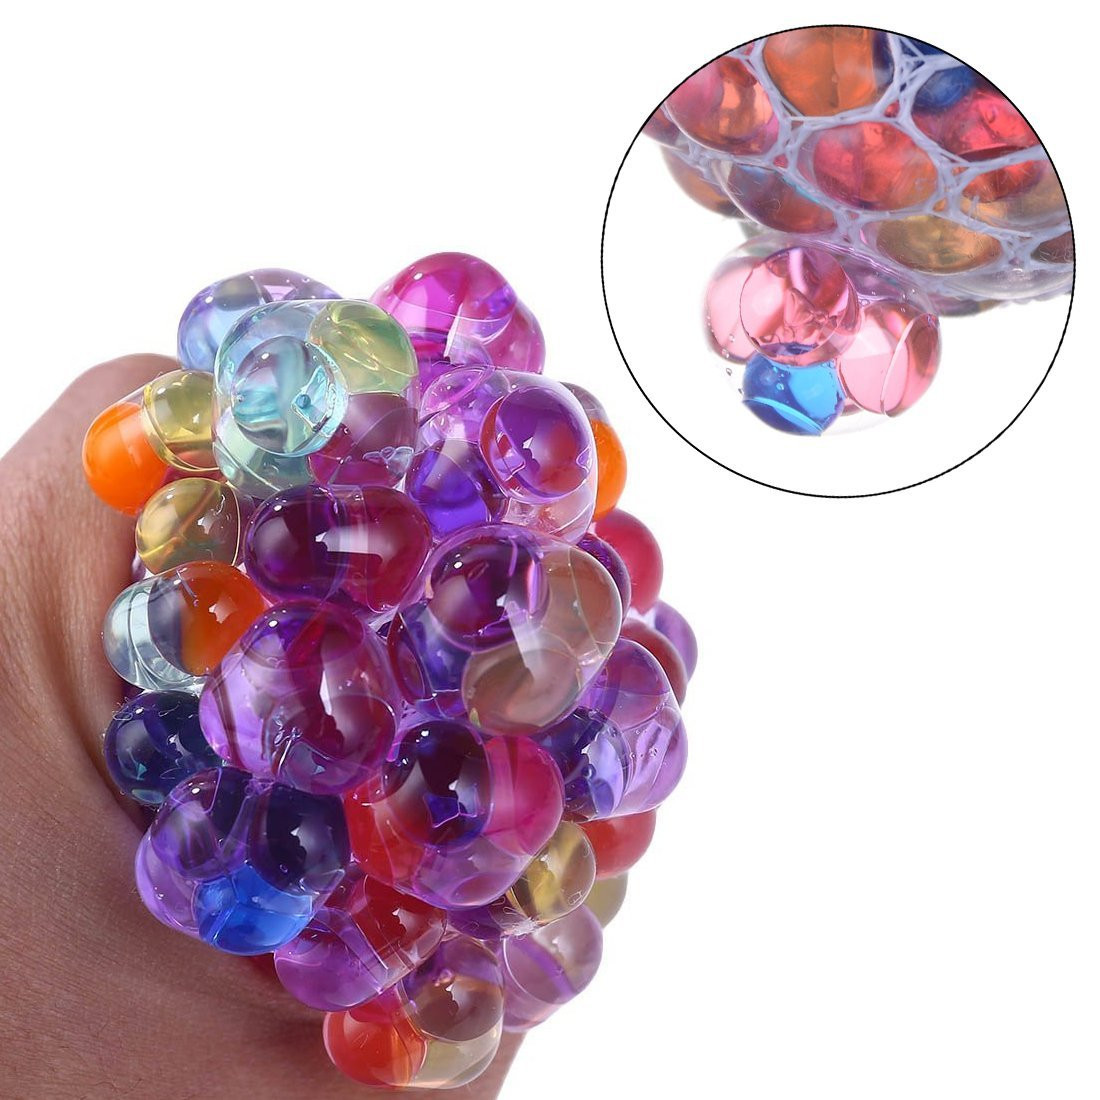 Funny Anti-Stress Squishy LED Mesh Ball Grape Squeeze Sensory Fruity Novelty Toys Kids & Adults Play Vent Rainbow Ball Toy